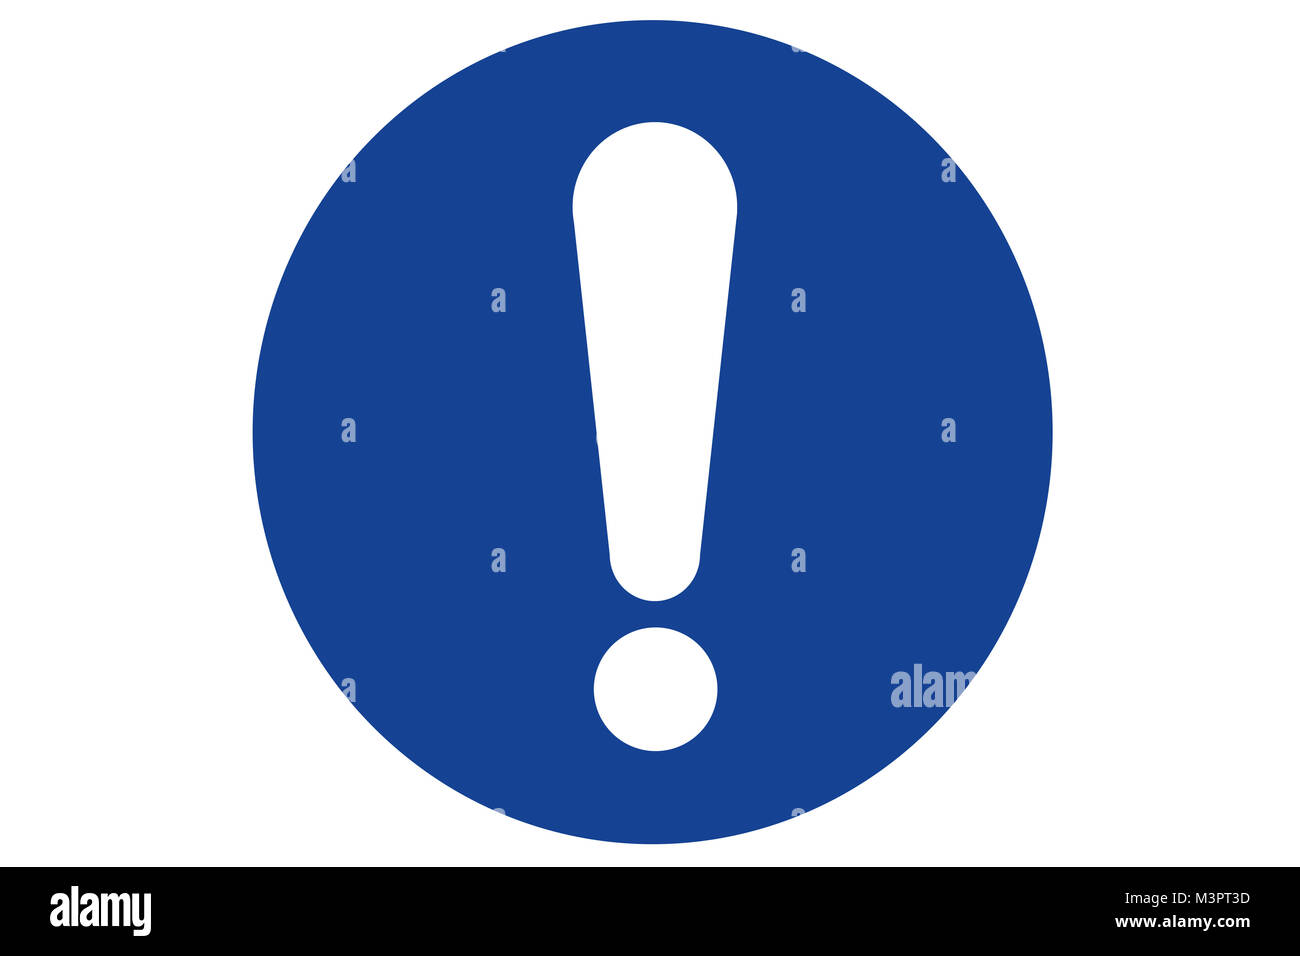 A blue circular warning or information sign containing an exclamation mark - Stock Image